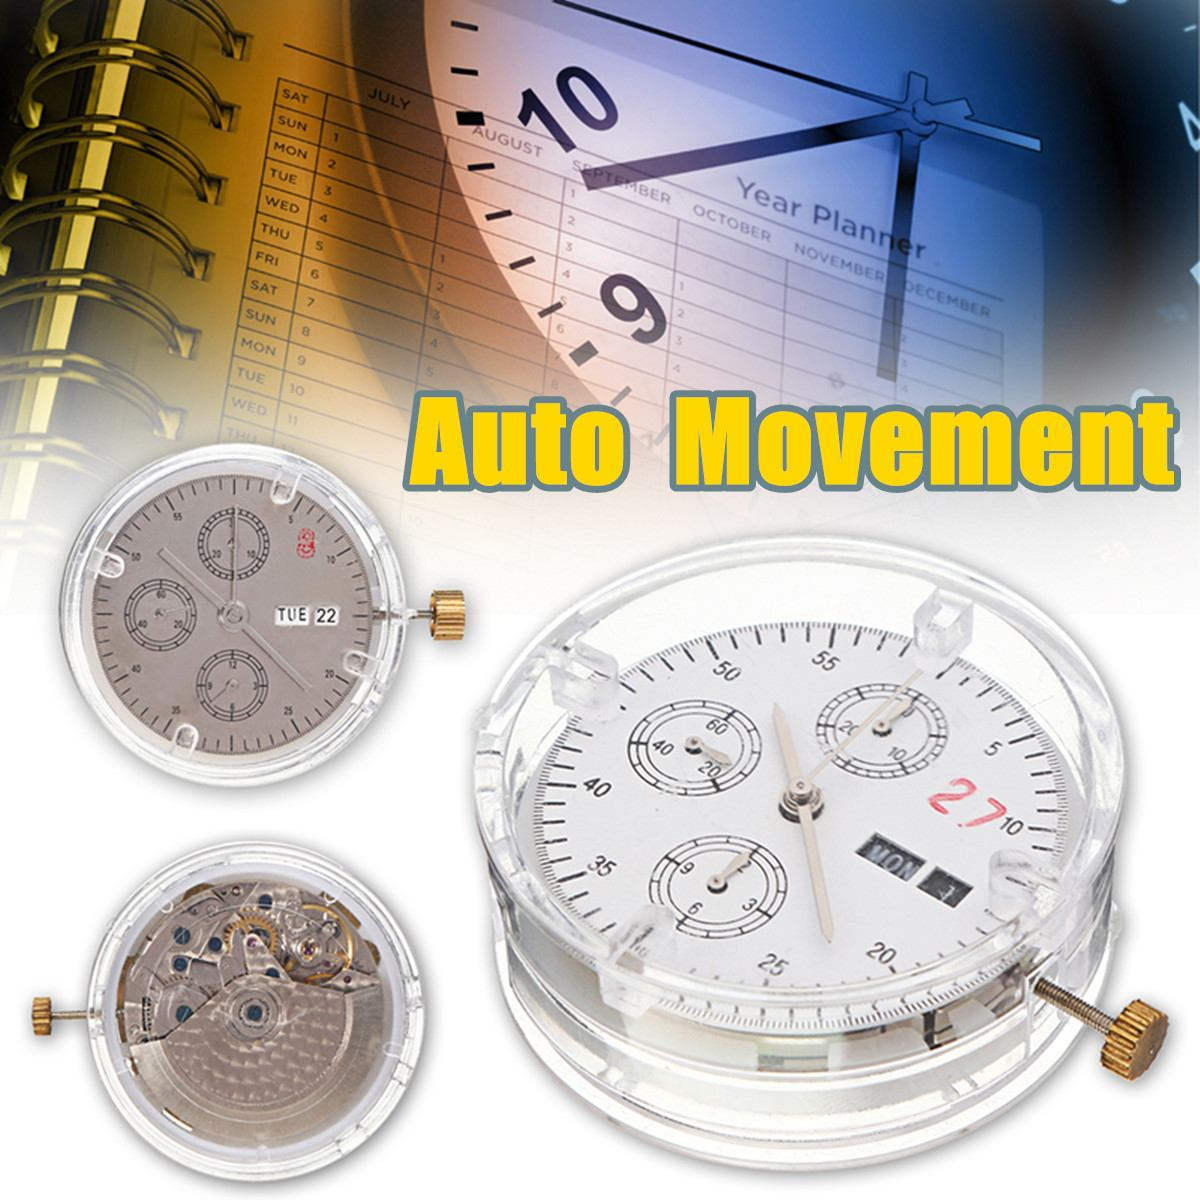 Plastic Automatic Movement ETA Clone 7750 Replacement Day Date Chronograph Repair Tools Kit Parts Fittings Watch Accessories-in Repair Tools & Kits from Watches    1